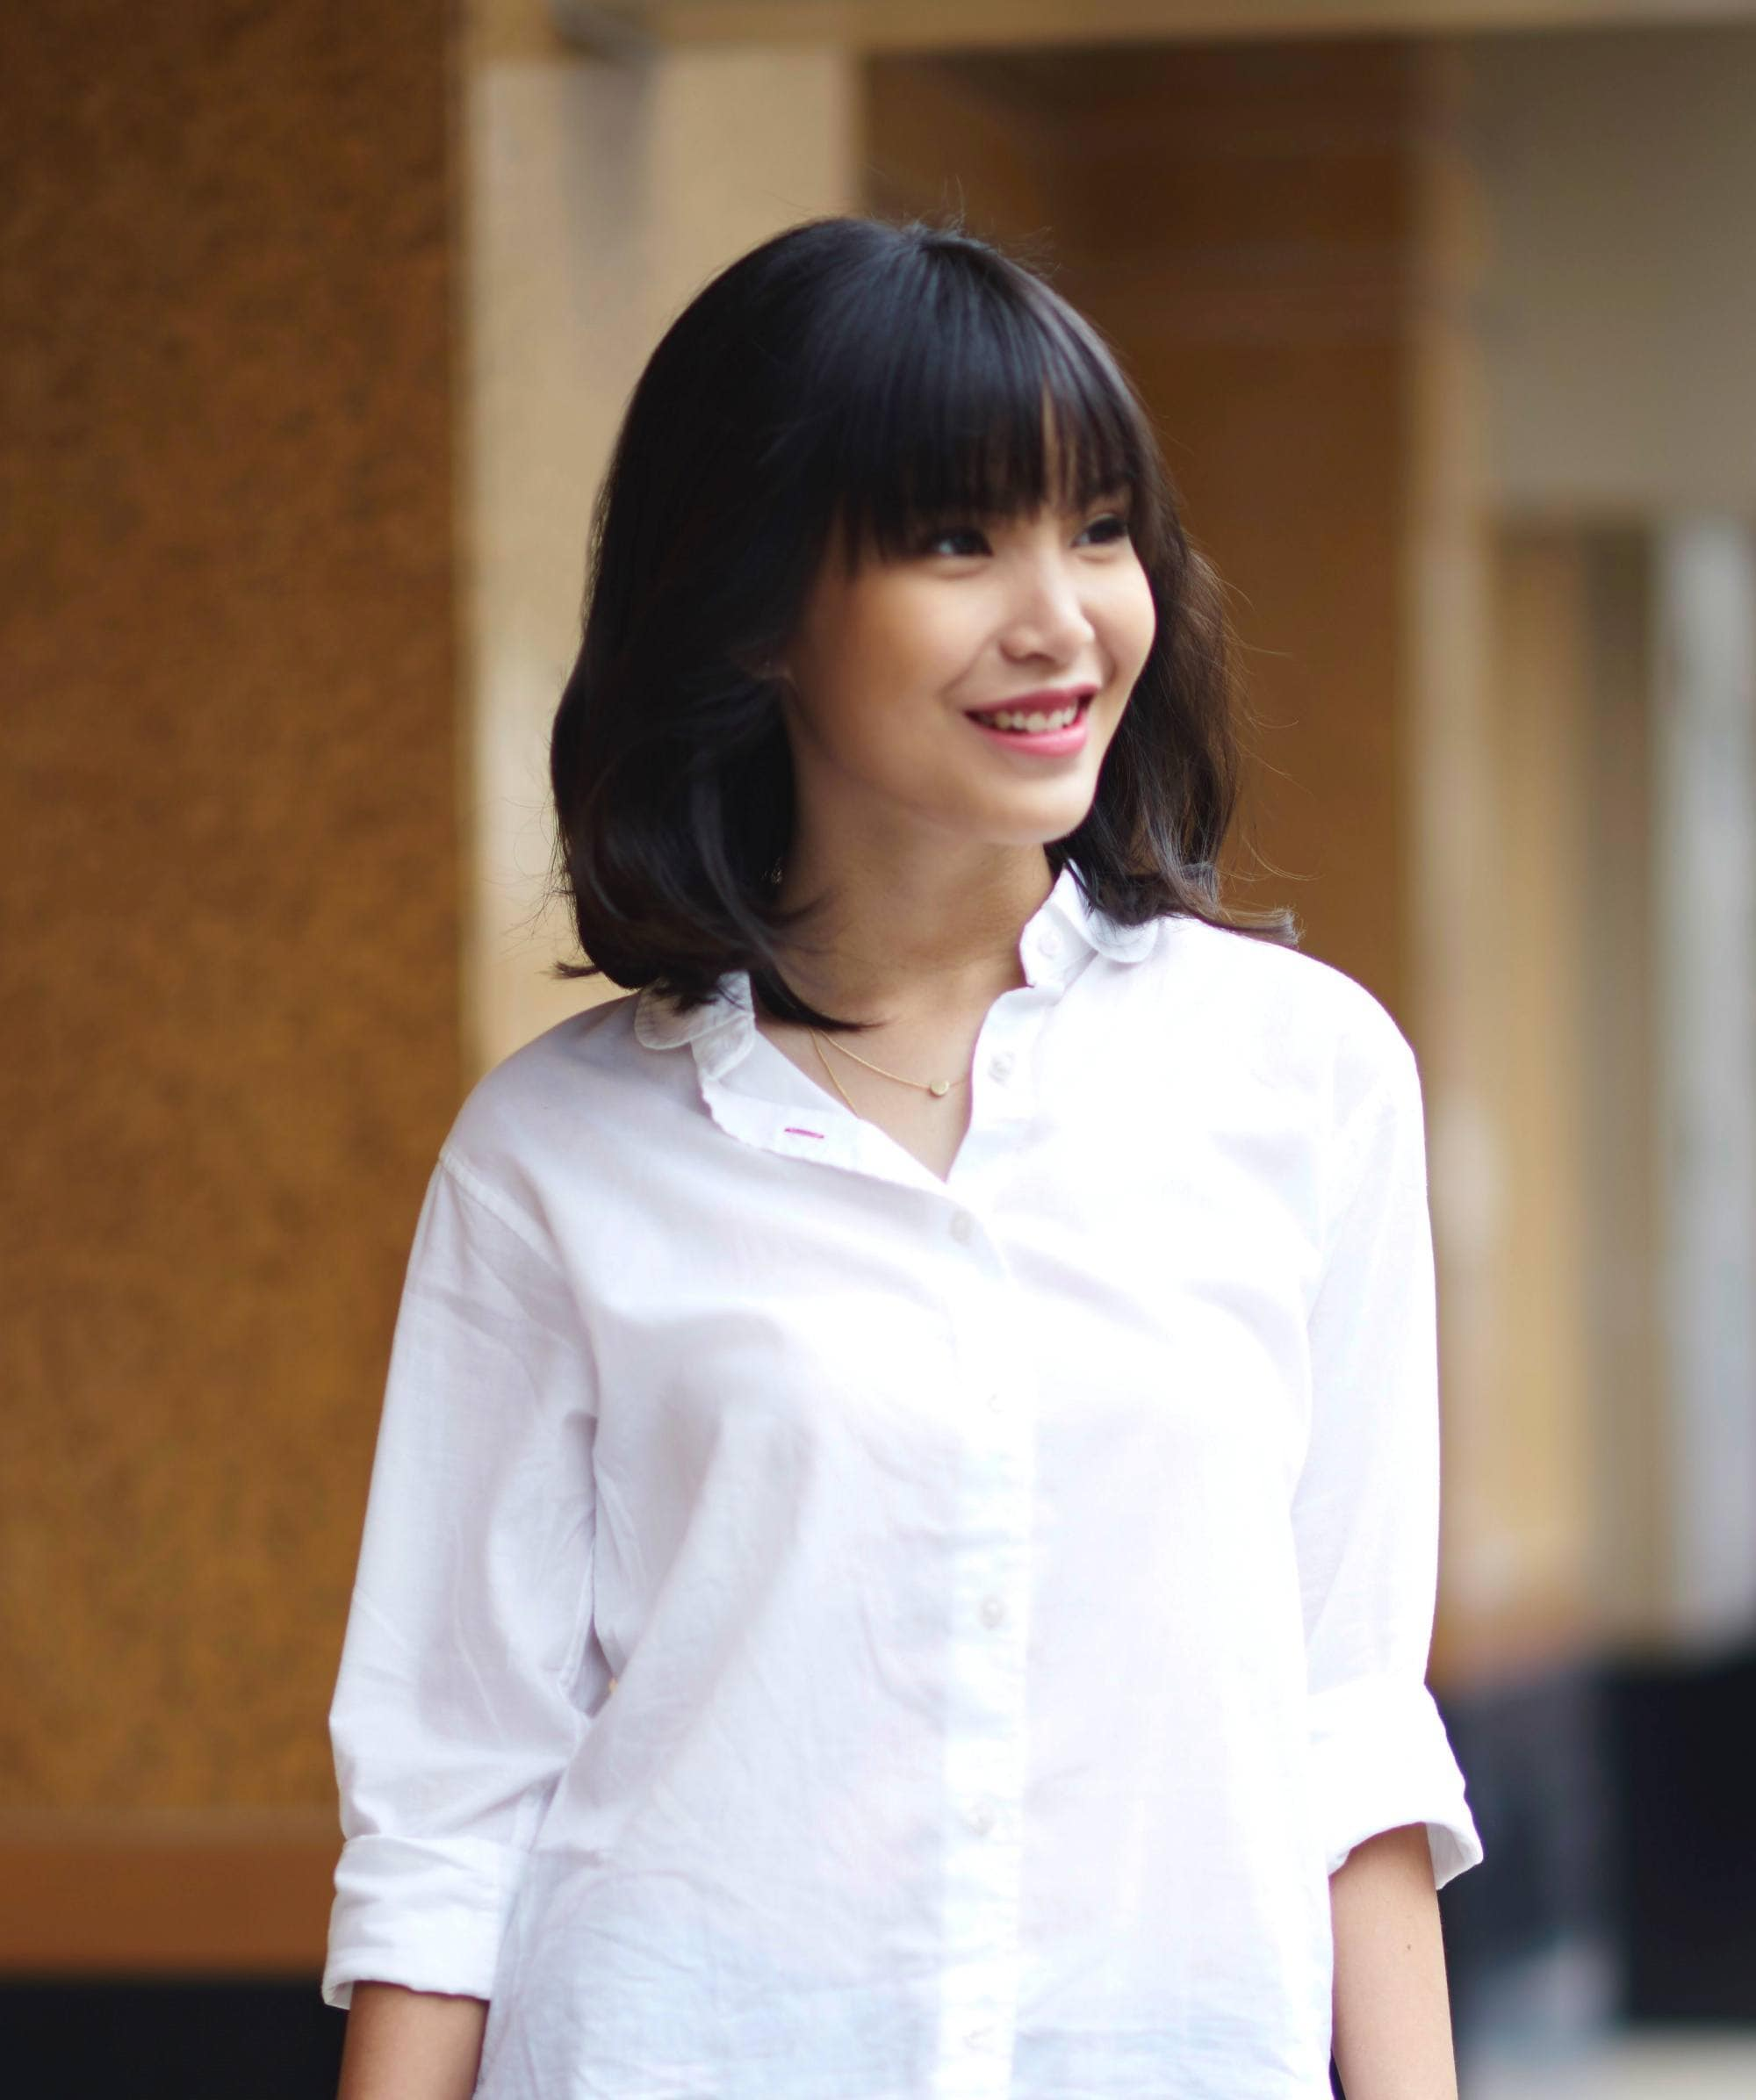 Blow dry your hair: Asian woman with shoulder-length black hair with bangs wearing a white blouse outdoors